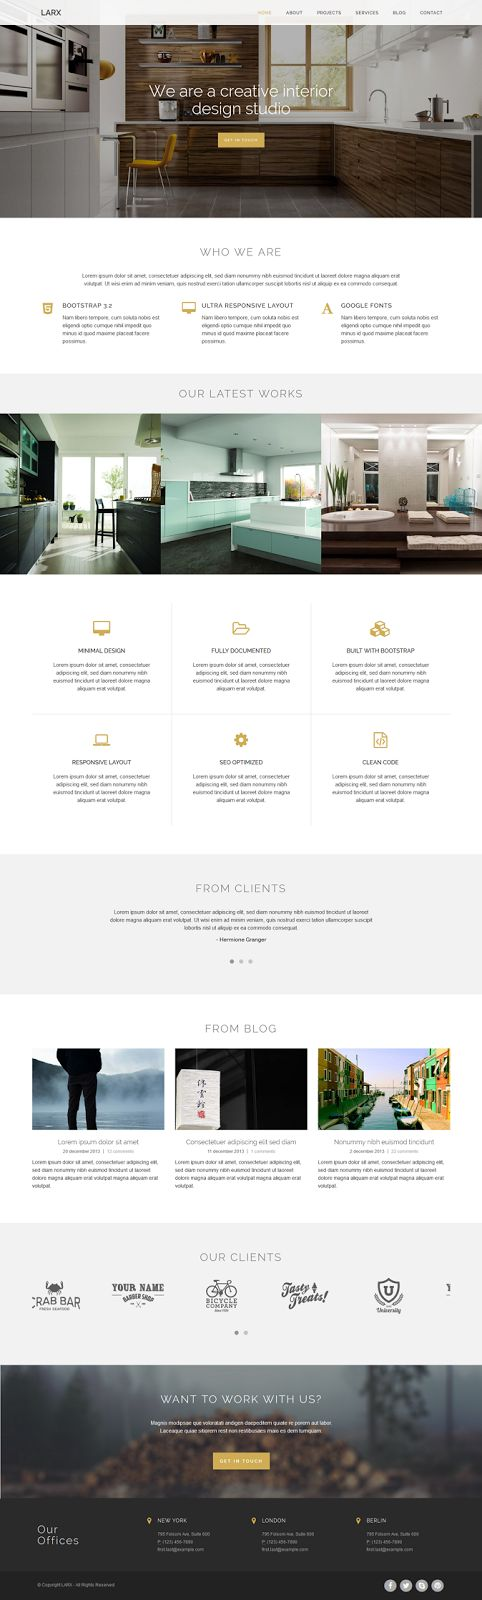 16 best images about bootstrap themes on pinterest for Interior design business website